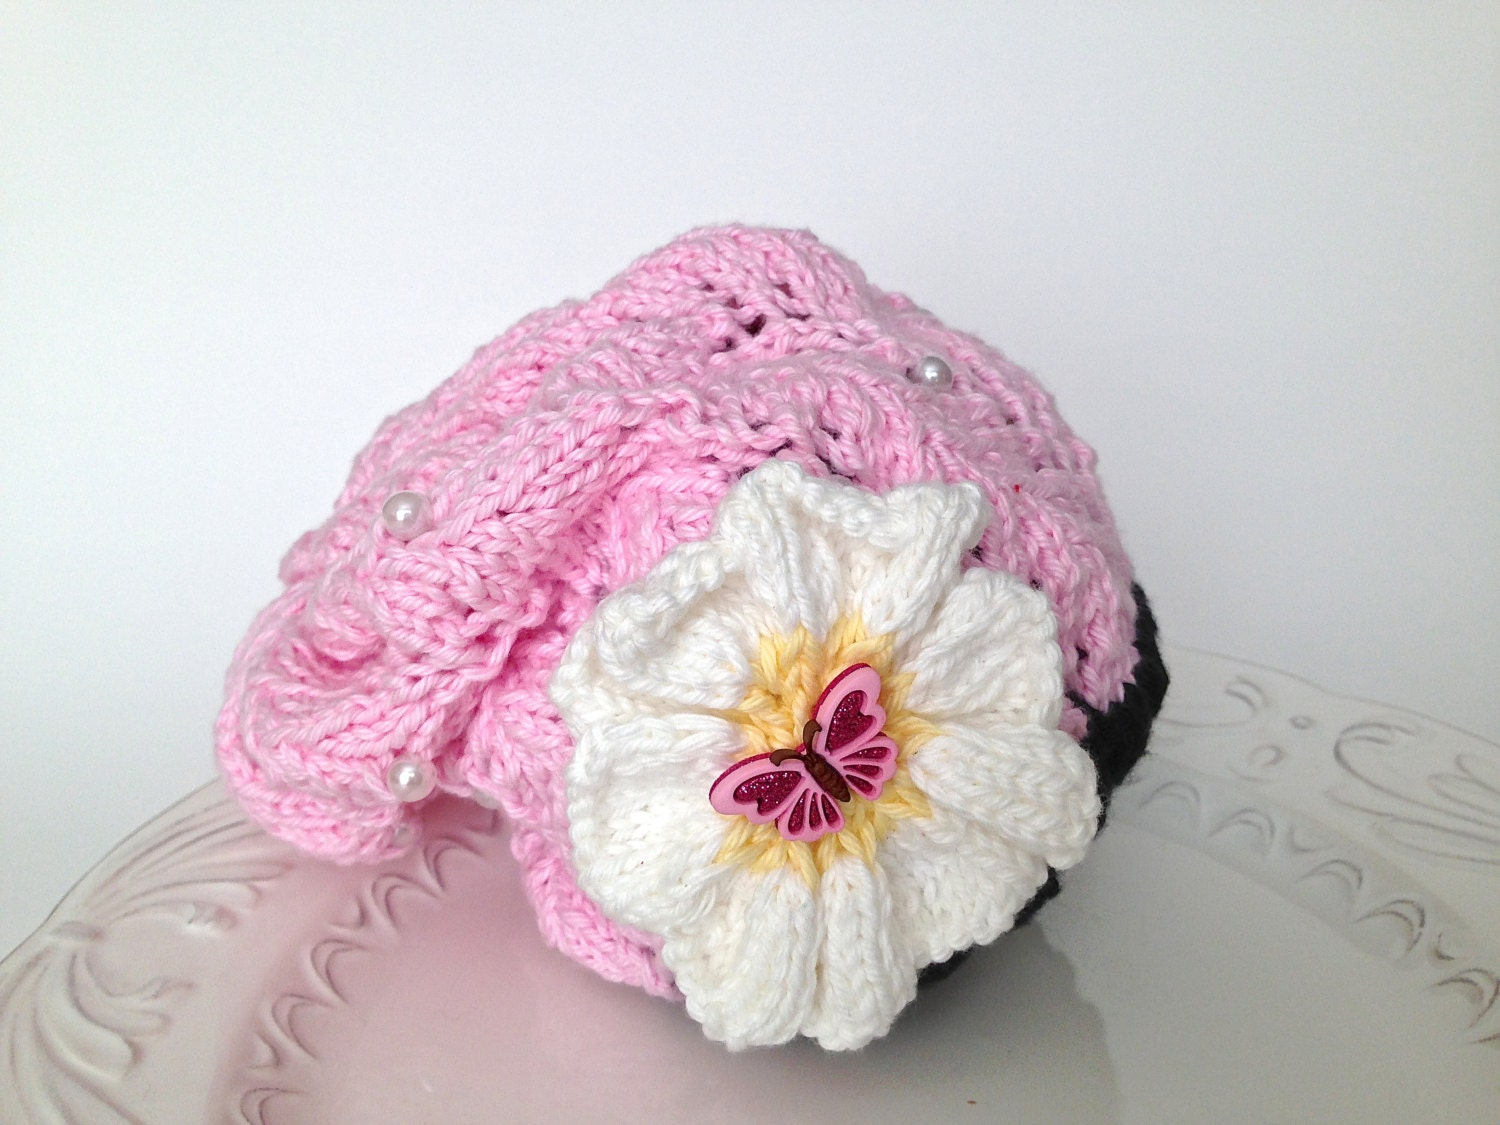 Slouchy knitted hat for baby, with flower, butterfly and beads - 100 % cotton, ready to ship - TinyLoveGifts